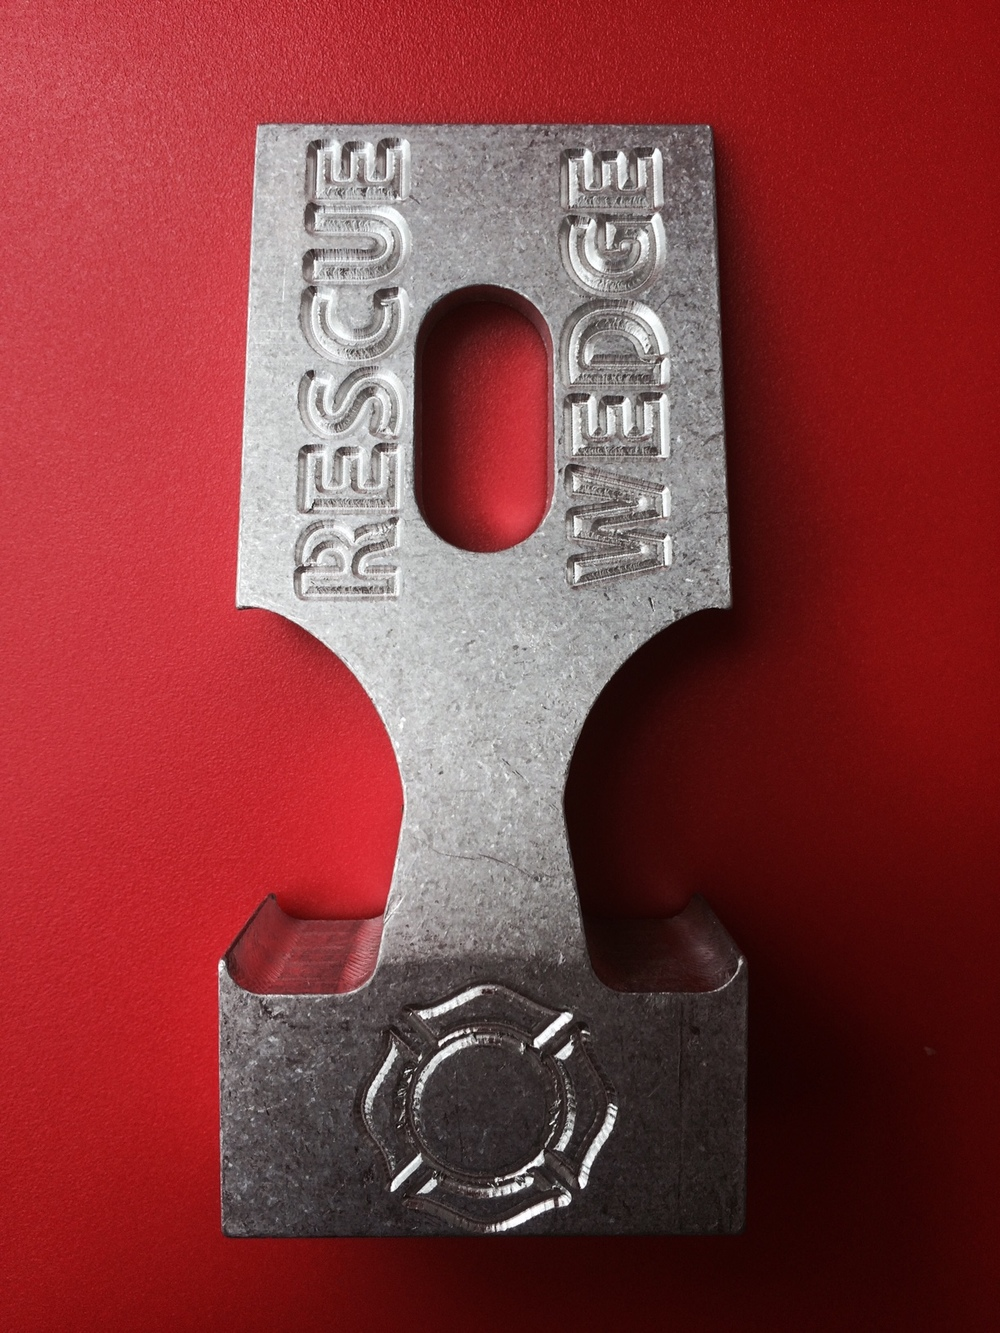 "RESCUE WEDGE - 1 3/4 INCH   Specifications: At only 4.3 ounces, The Rescue Wedge is extruded from aluminum alloy. The tool is 4"" long x 1.75"" wide x .966"" declining height.  Made in the USA.   COST: $30.00"